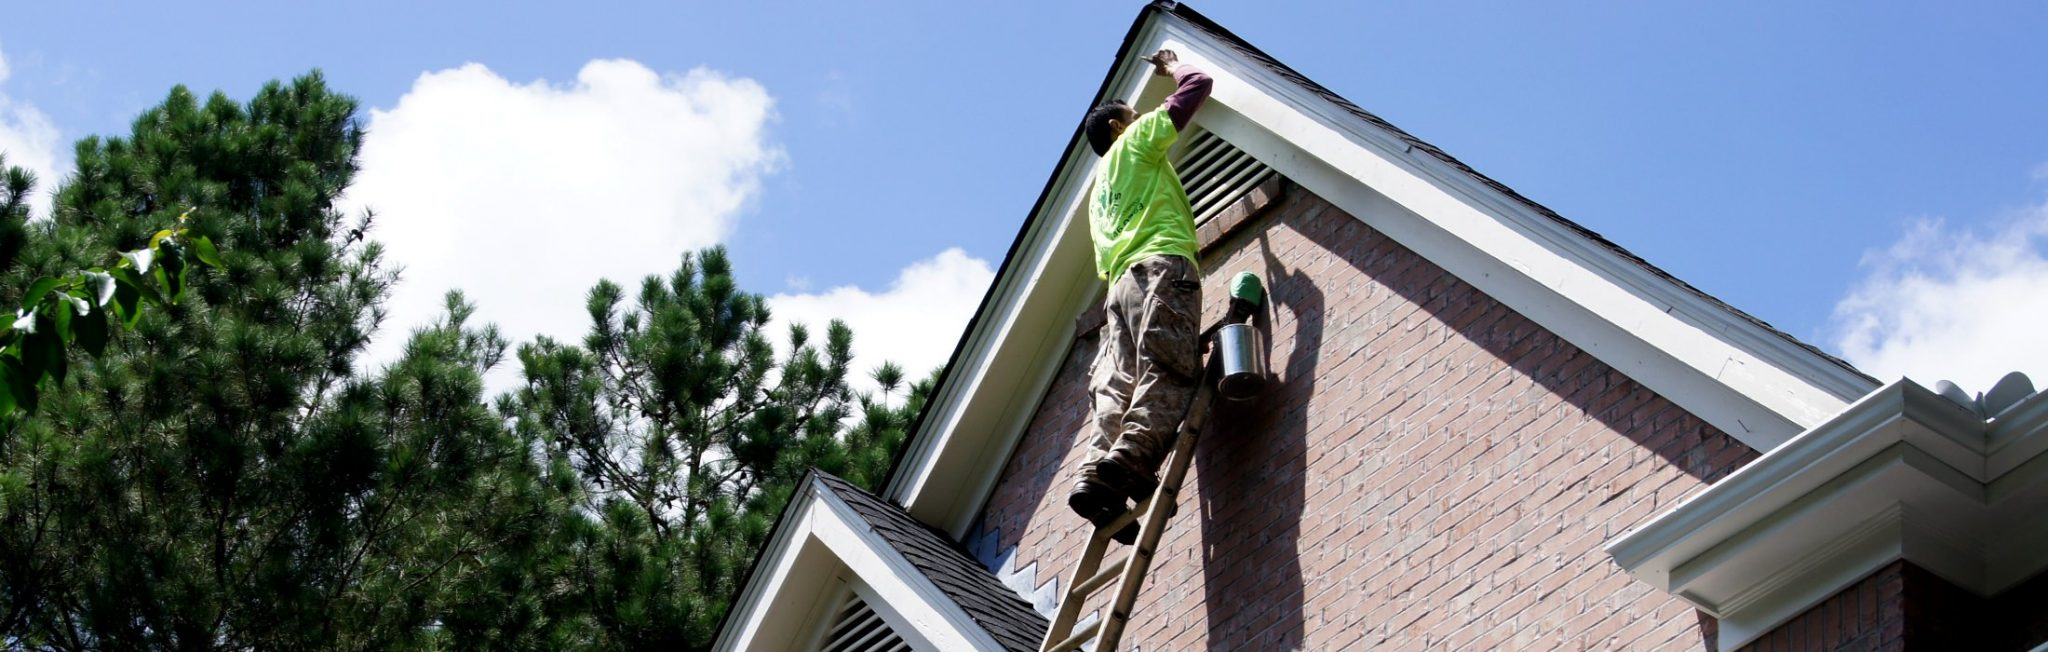 View Larger Image Best Time To Paint The Exterior Of Your Home In Alpharetta